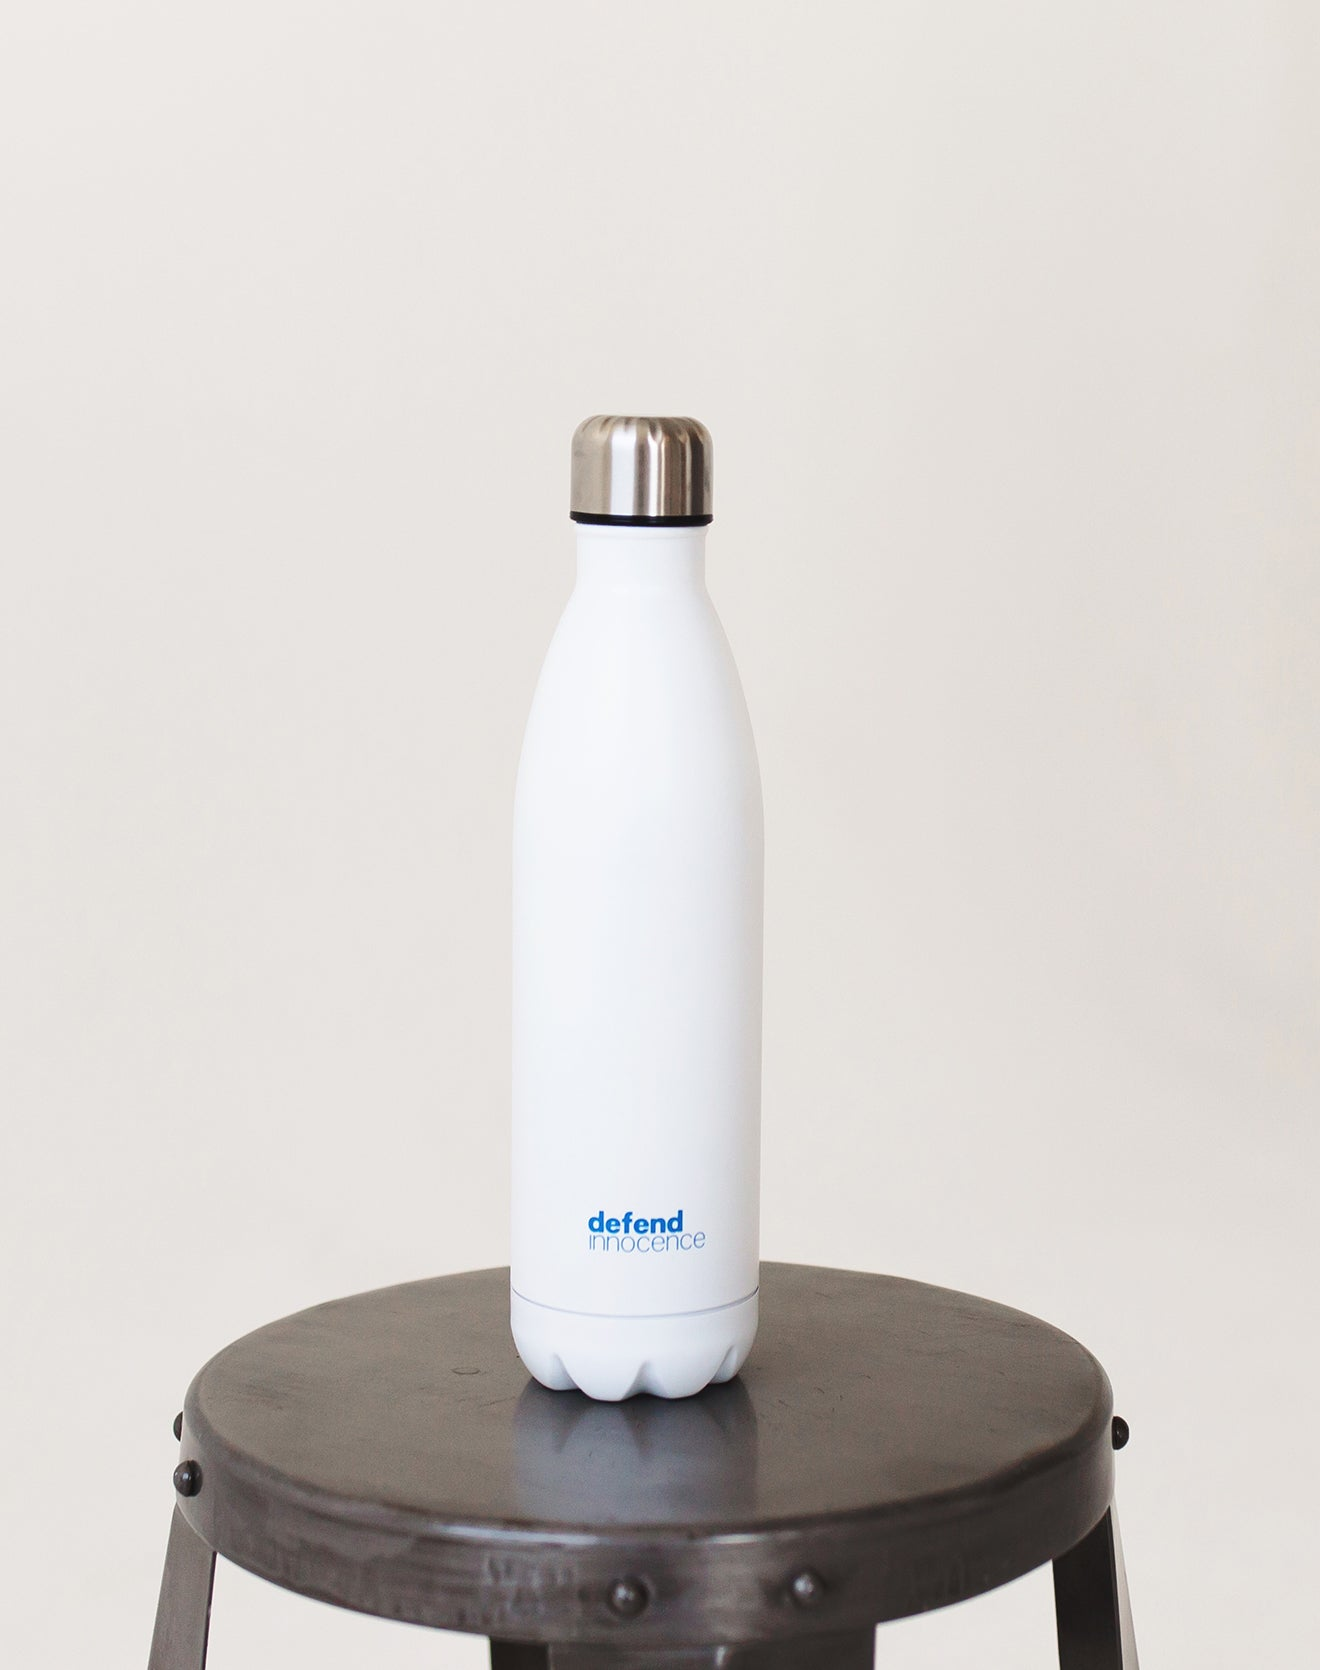 Defender Stainless Steel Double Walled Insulated Bottle